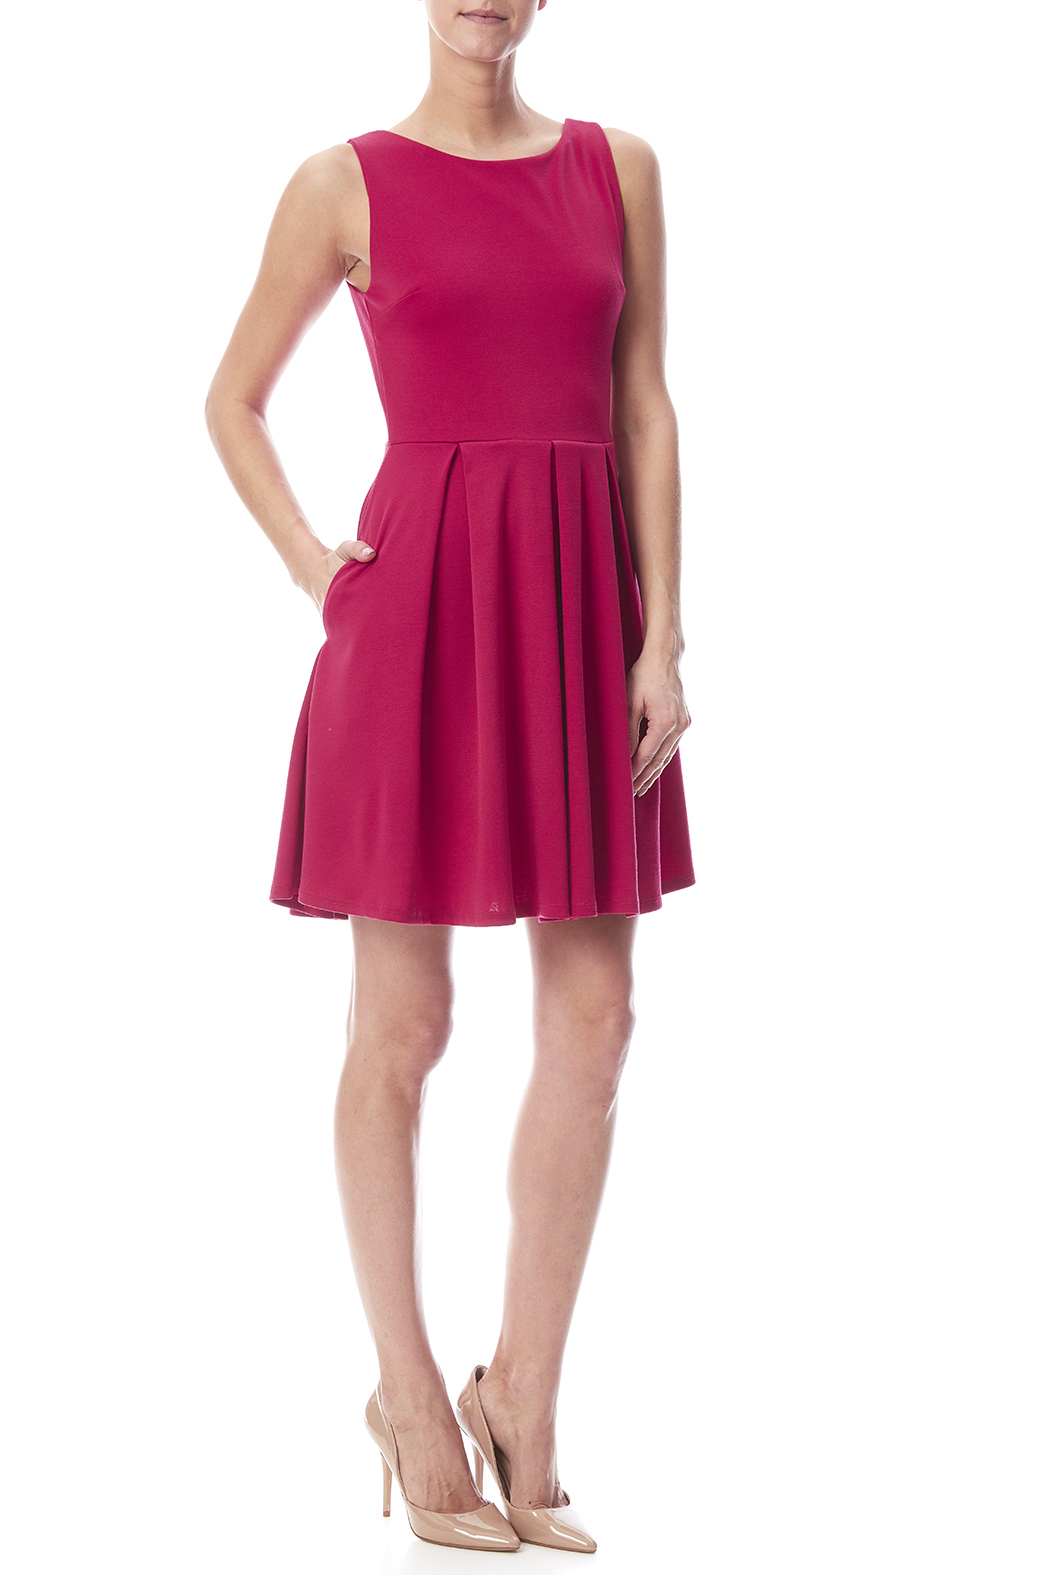 Apricity January Dress Fuchsia - Front Full Image